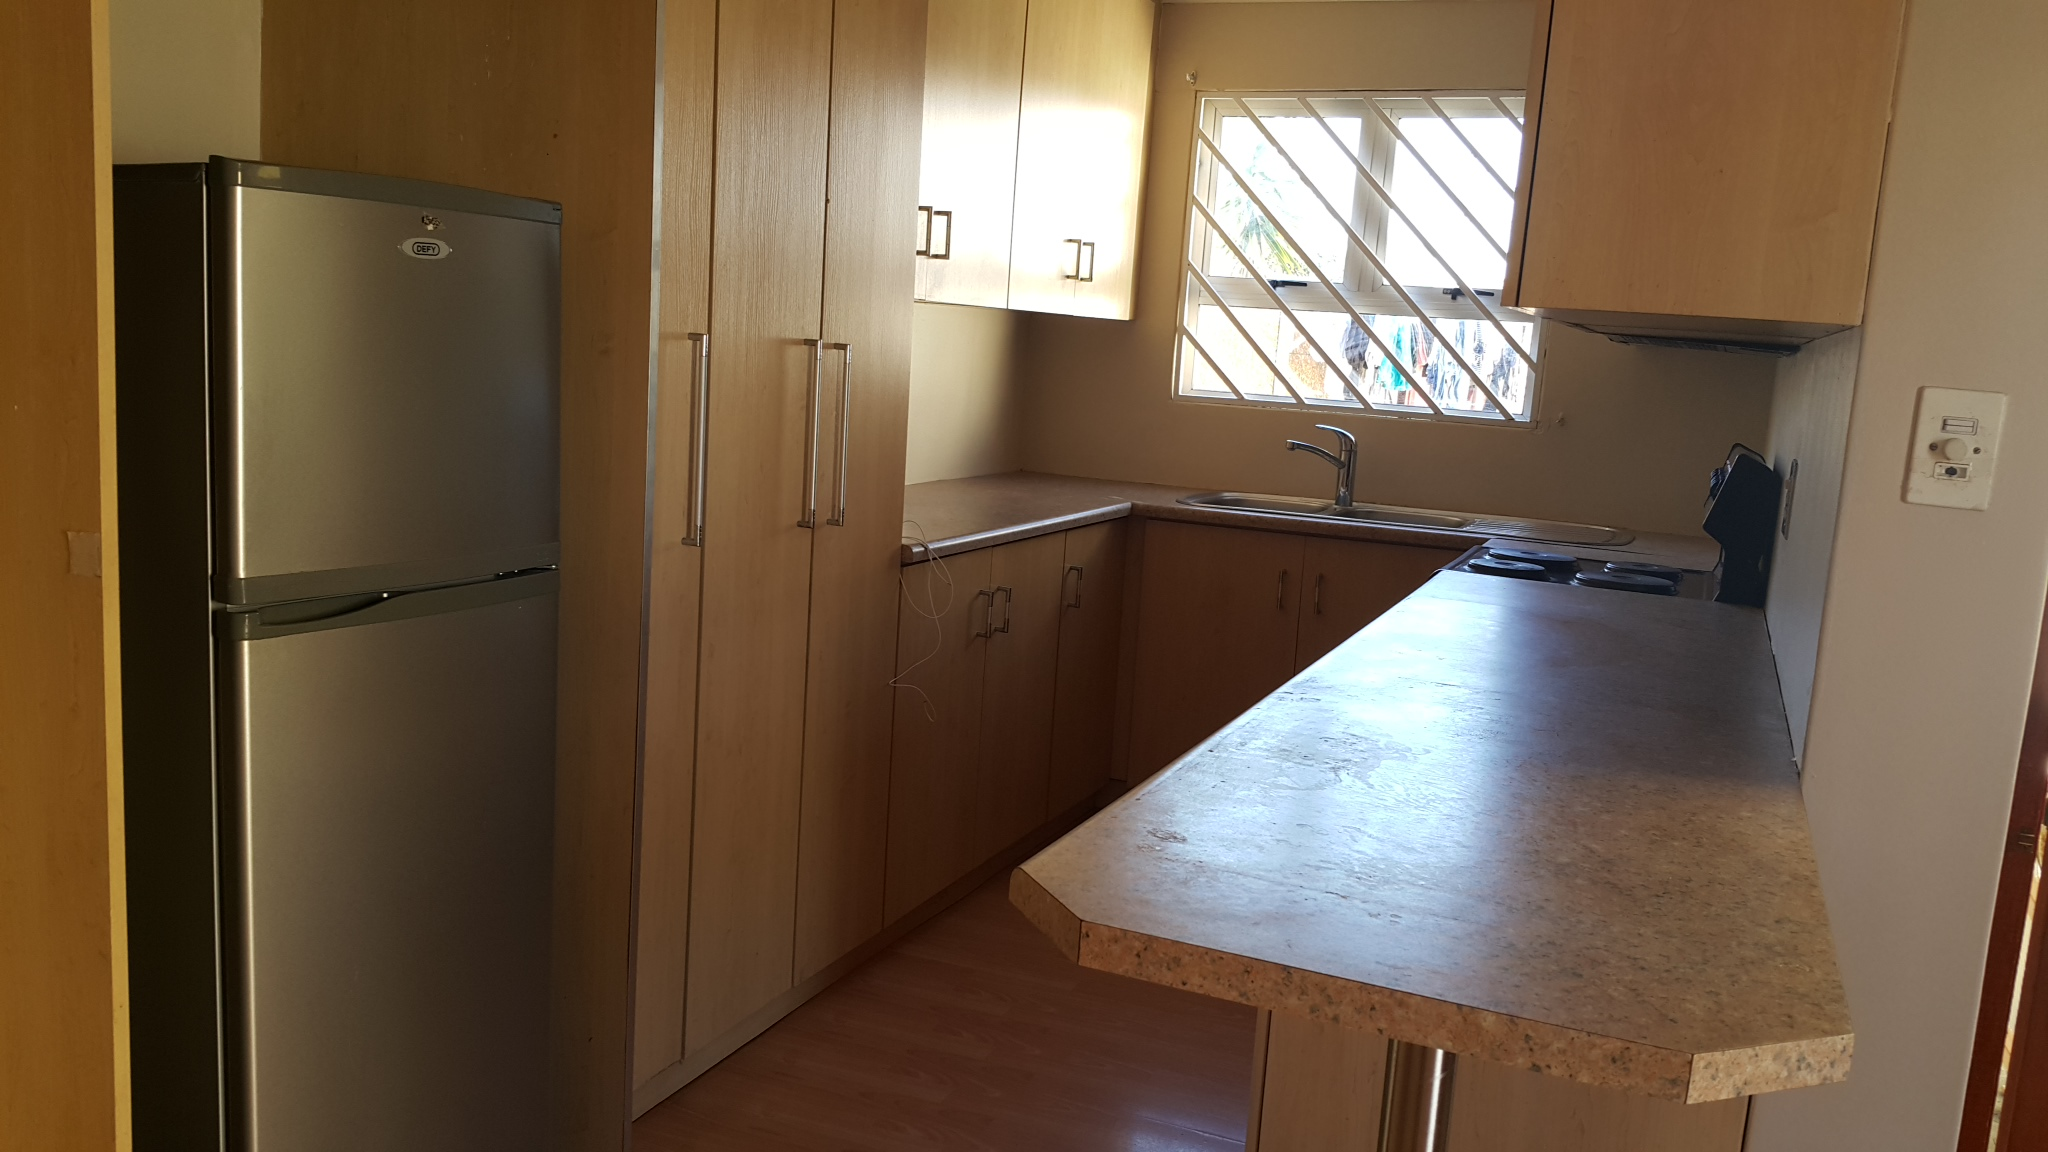 1 Bedroom granny flat in Rondebosch East – R4200